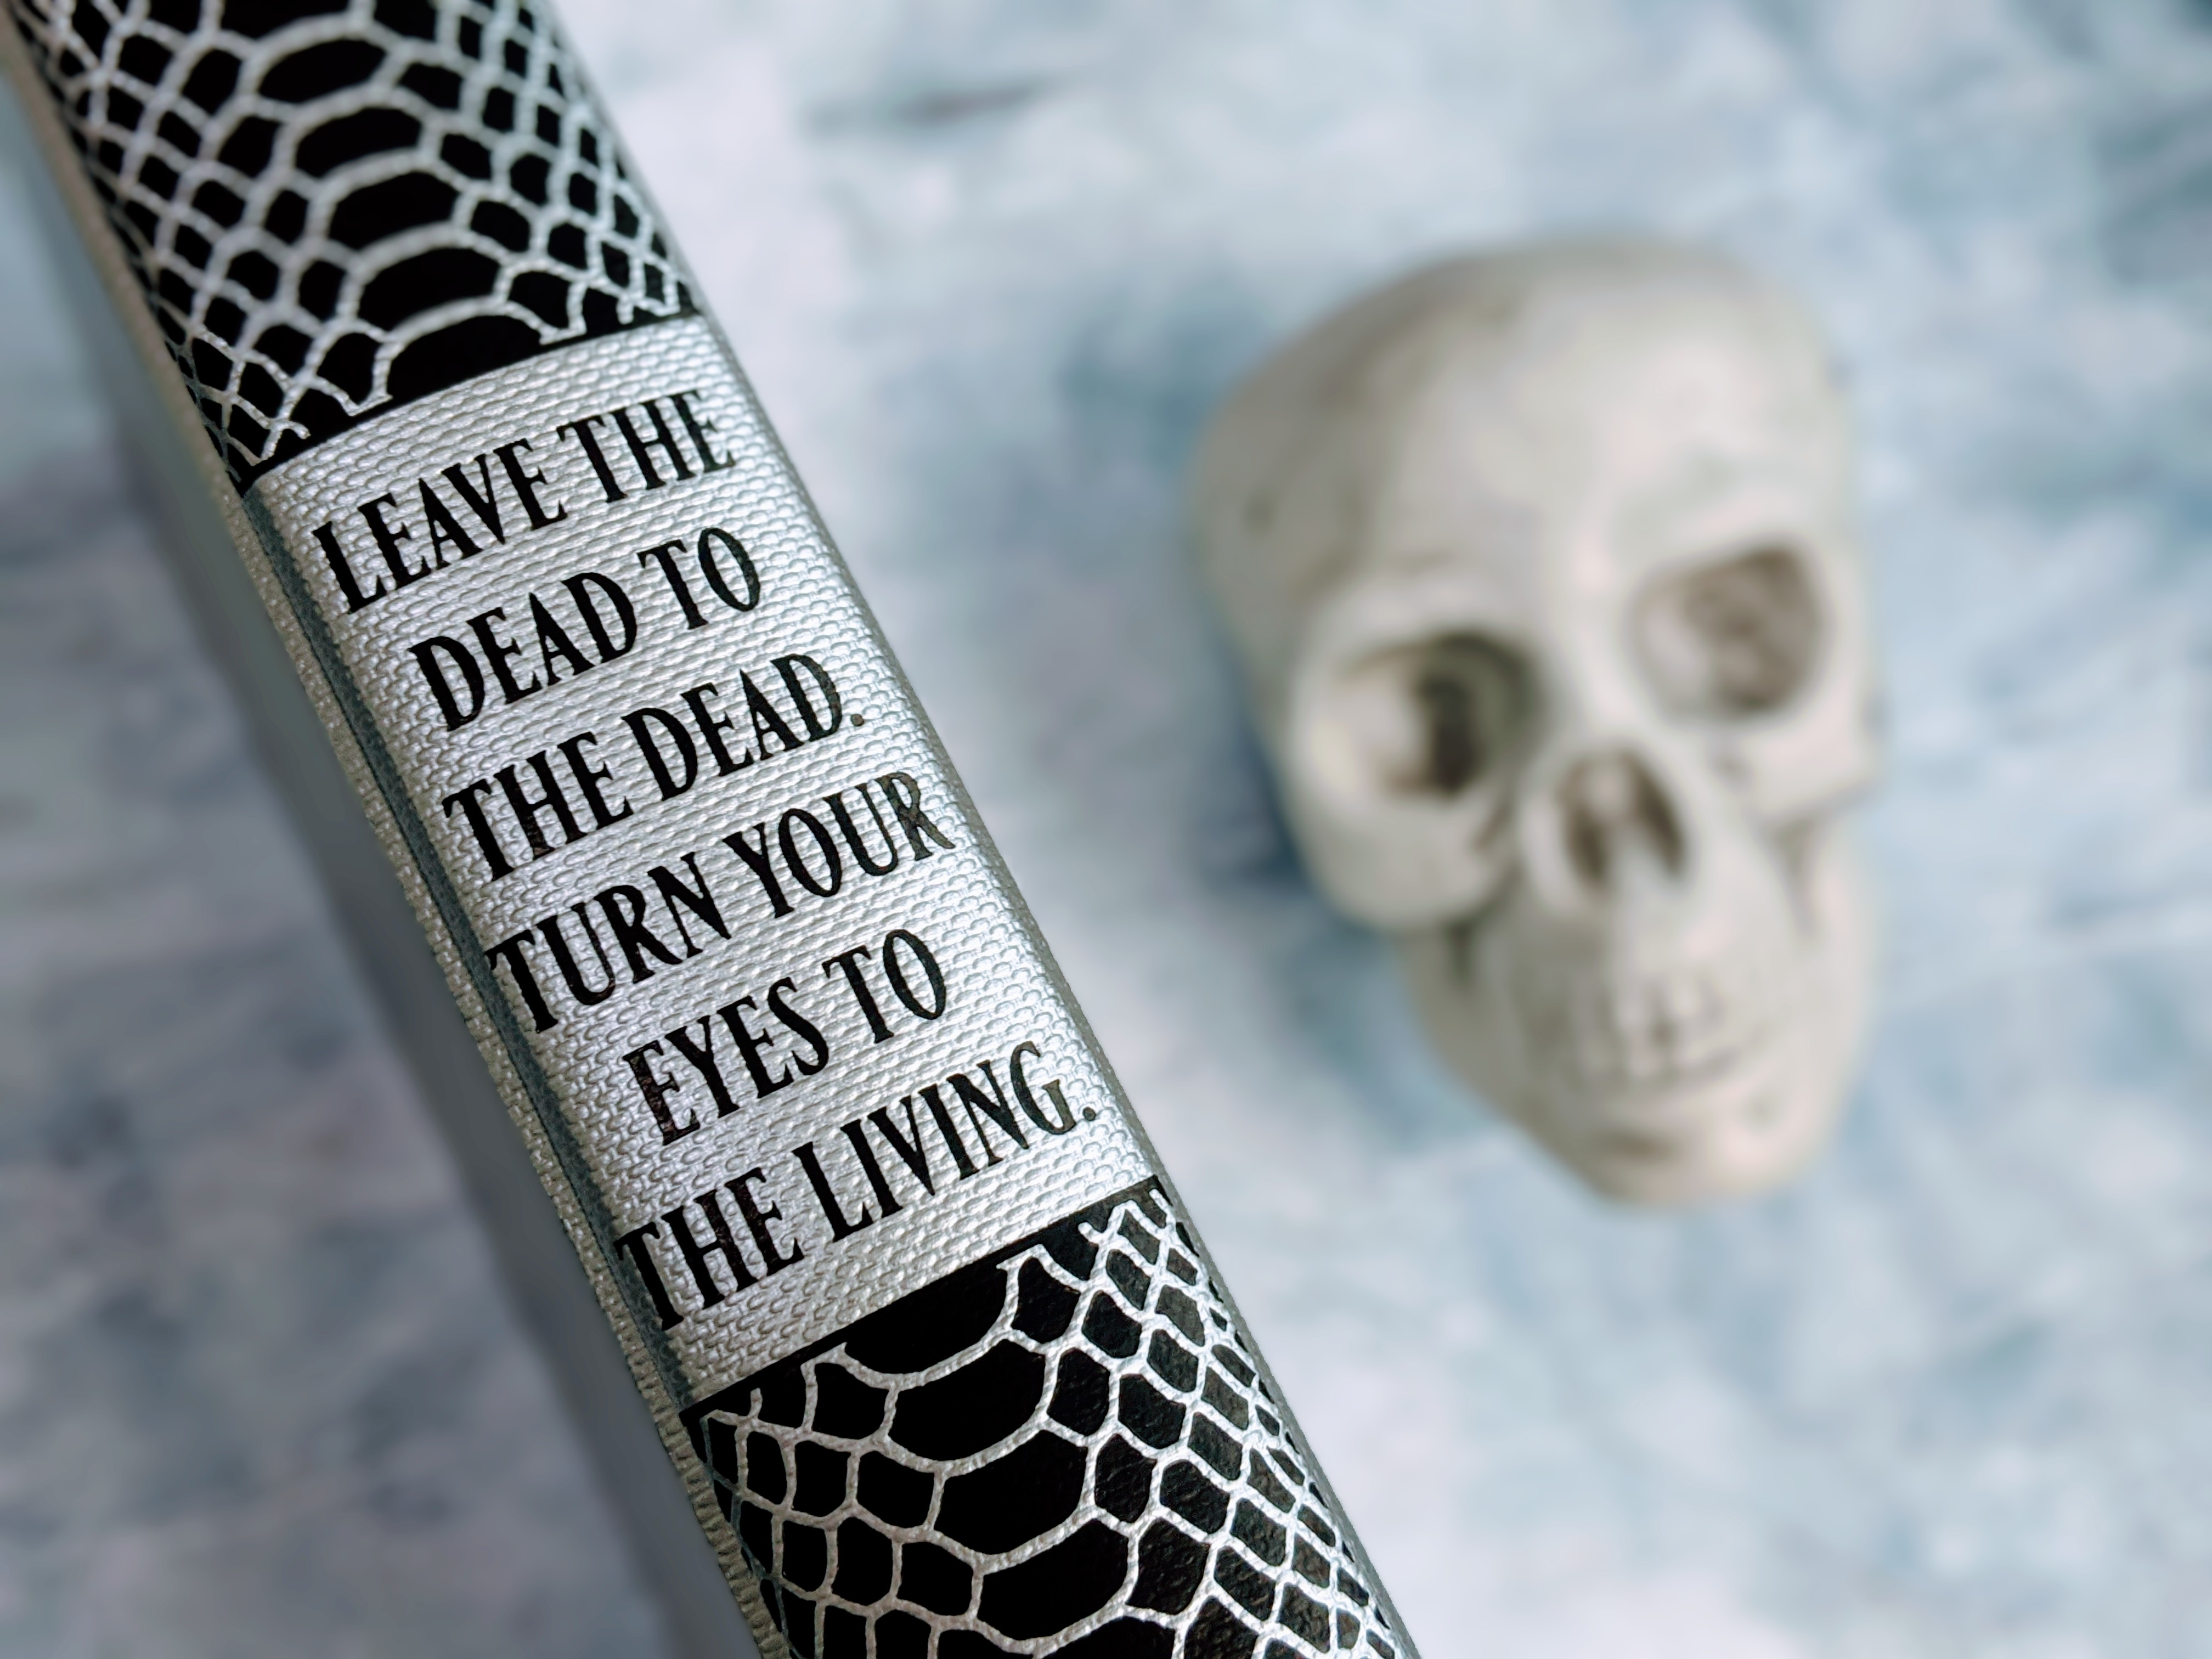 Illumicrate edition spine: Leave the dead to the dead. Turn your eyes to the living.